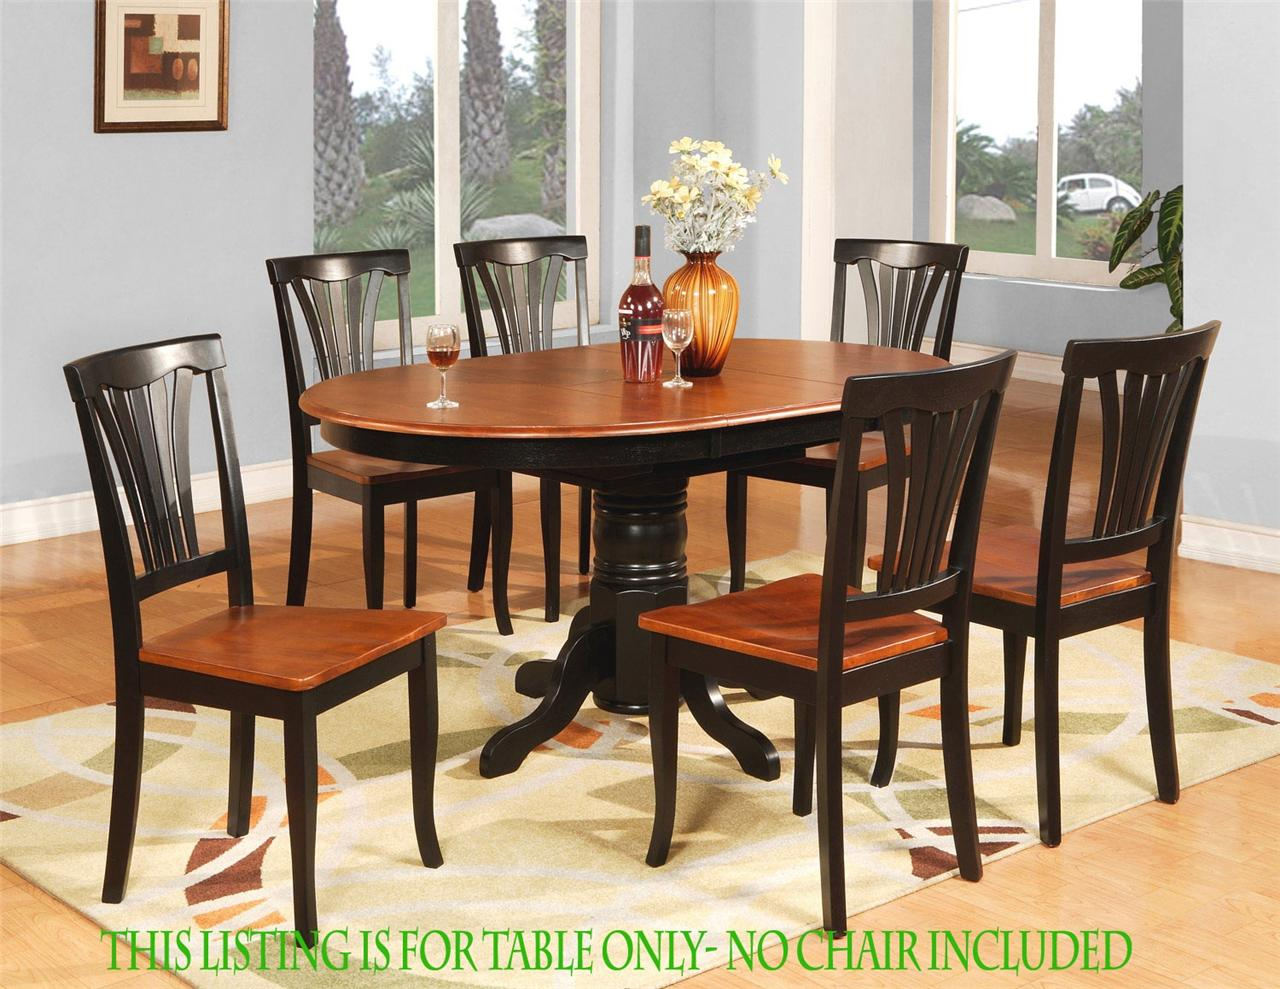 OVAL DINETTE KITCHEN DINING ROOM TABLE ONLY 42quotx 60quot WITH  : 609728440o from www.ebay.com size 1280 x 989 jpeg 177kB